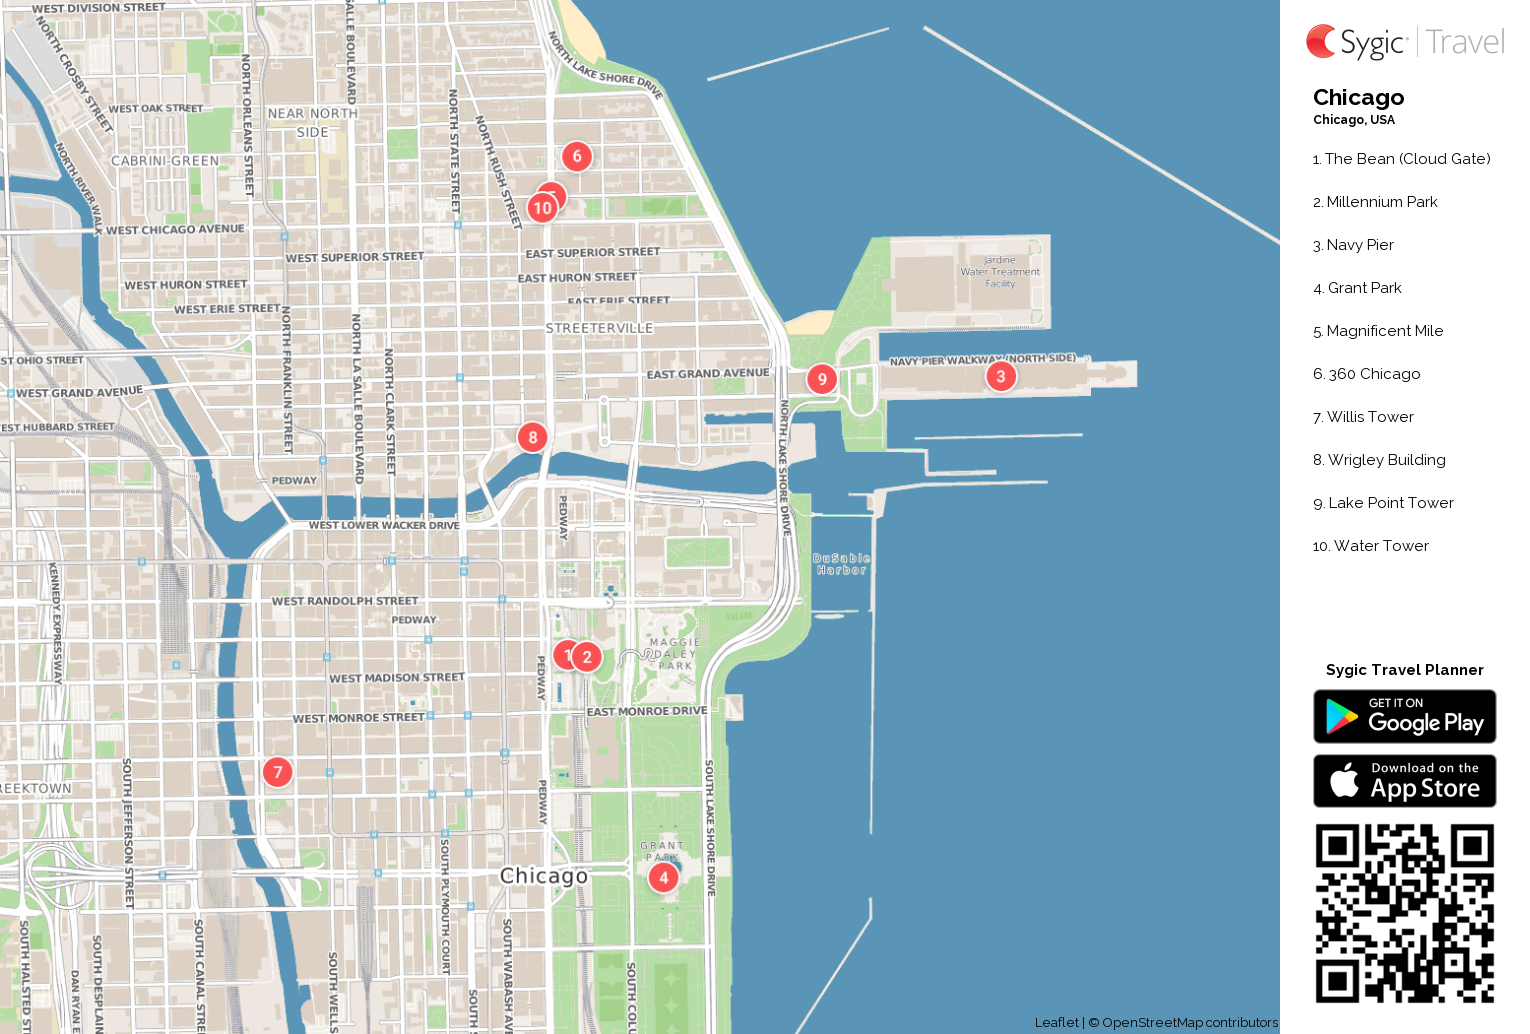 image about Printable Map of Chicago identified as Chicago Printable Vacationer Map Sygic Drive